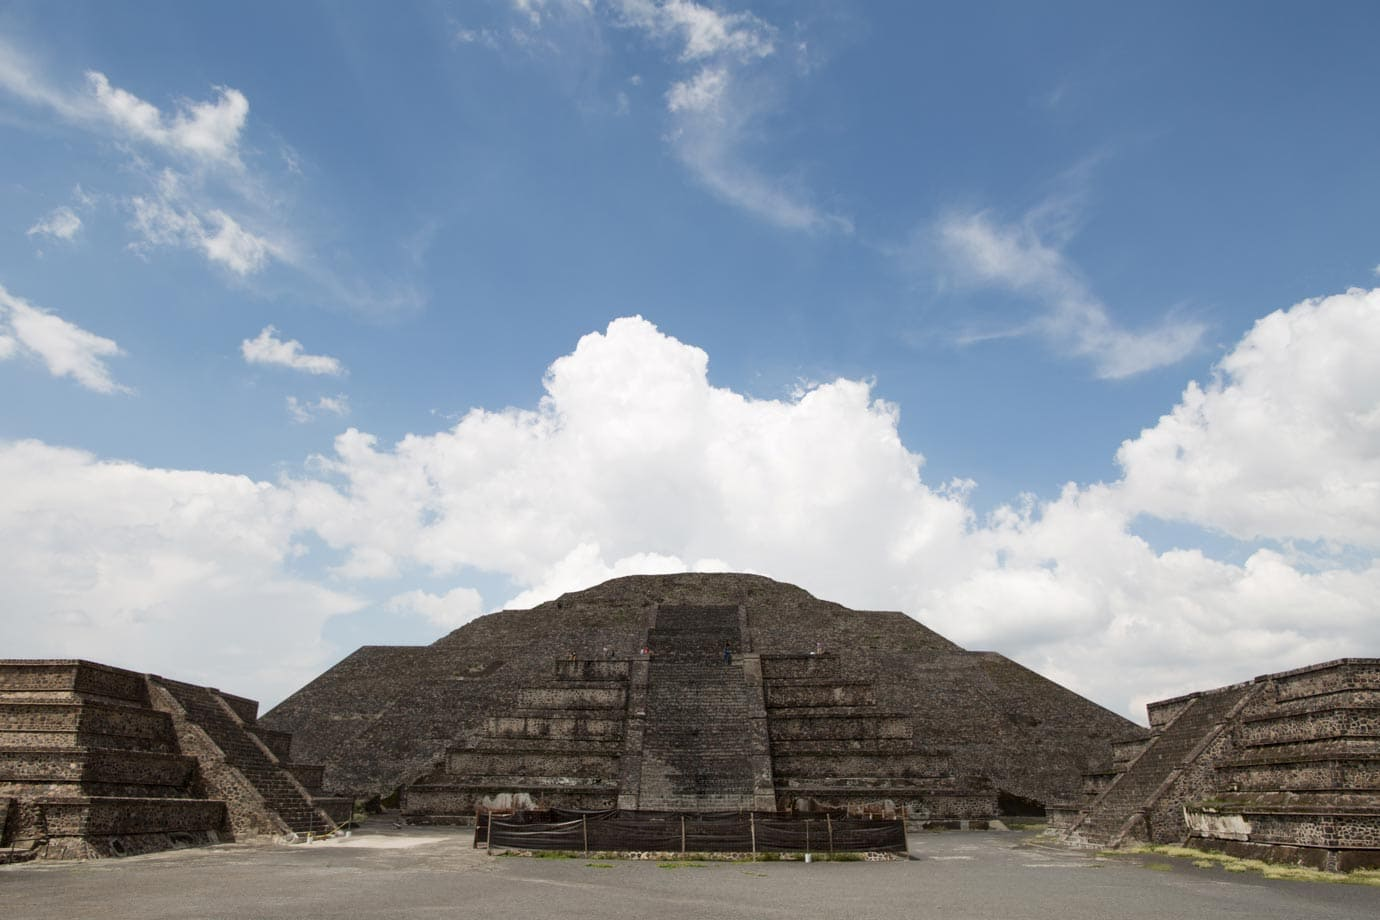 The Pyramid of the Moon at Teotihuacan